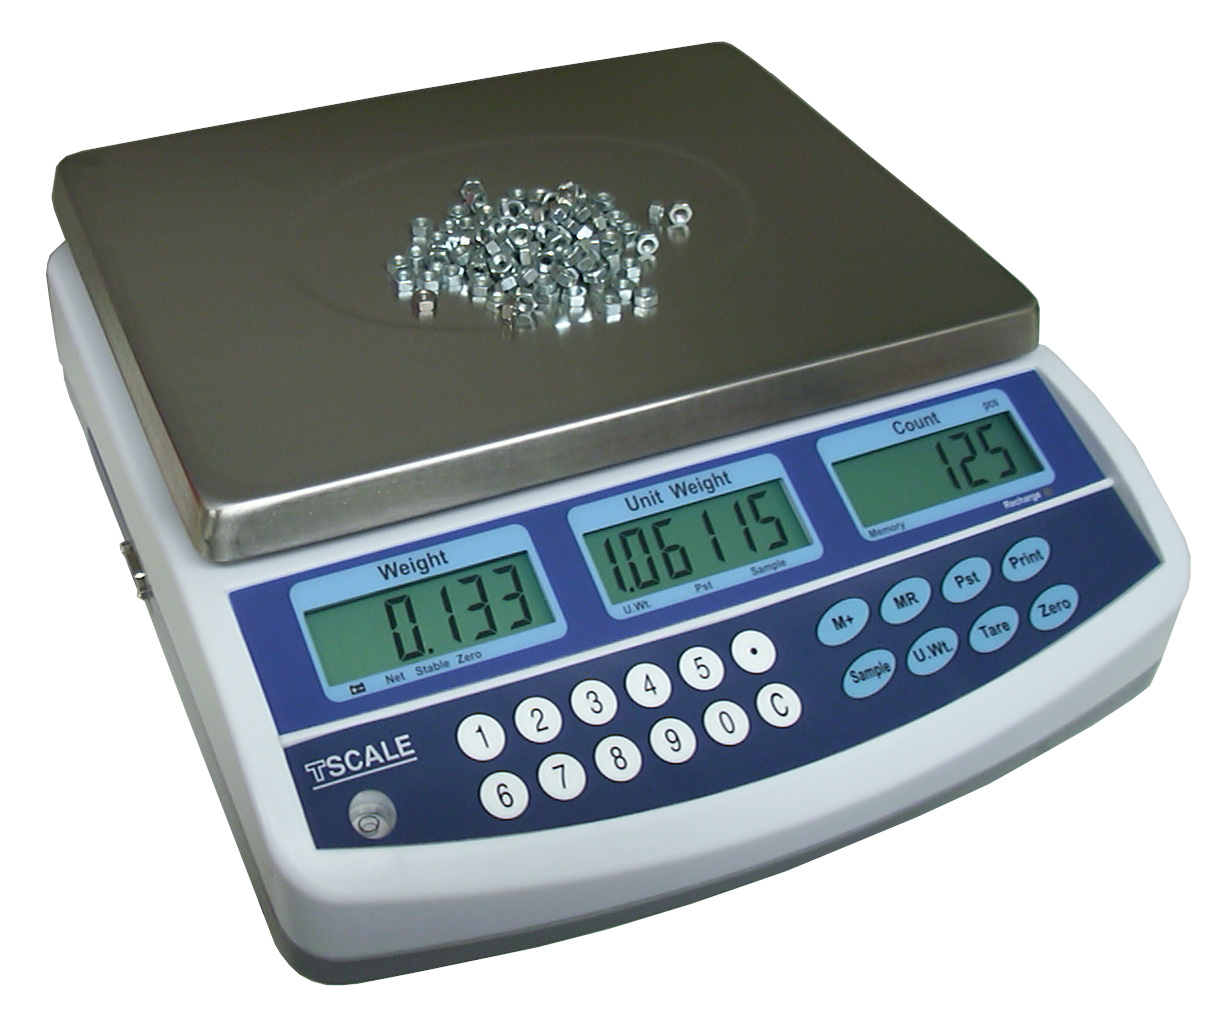 Counting Scales from countyscales.co.uk